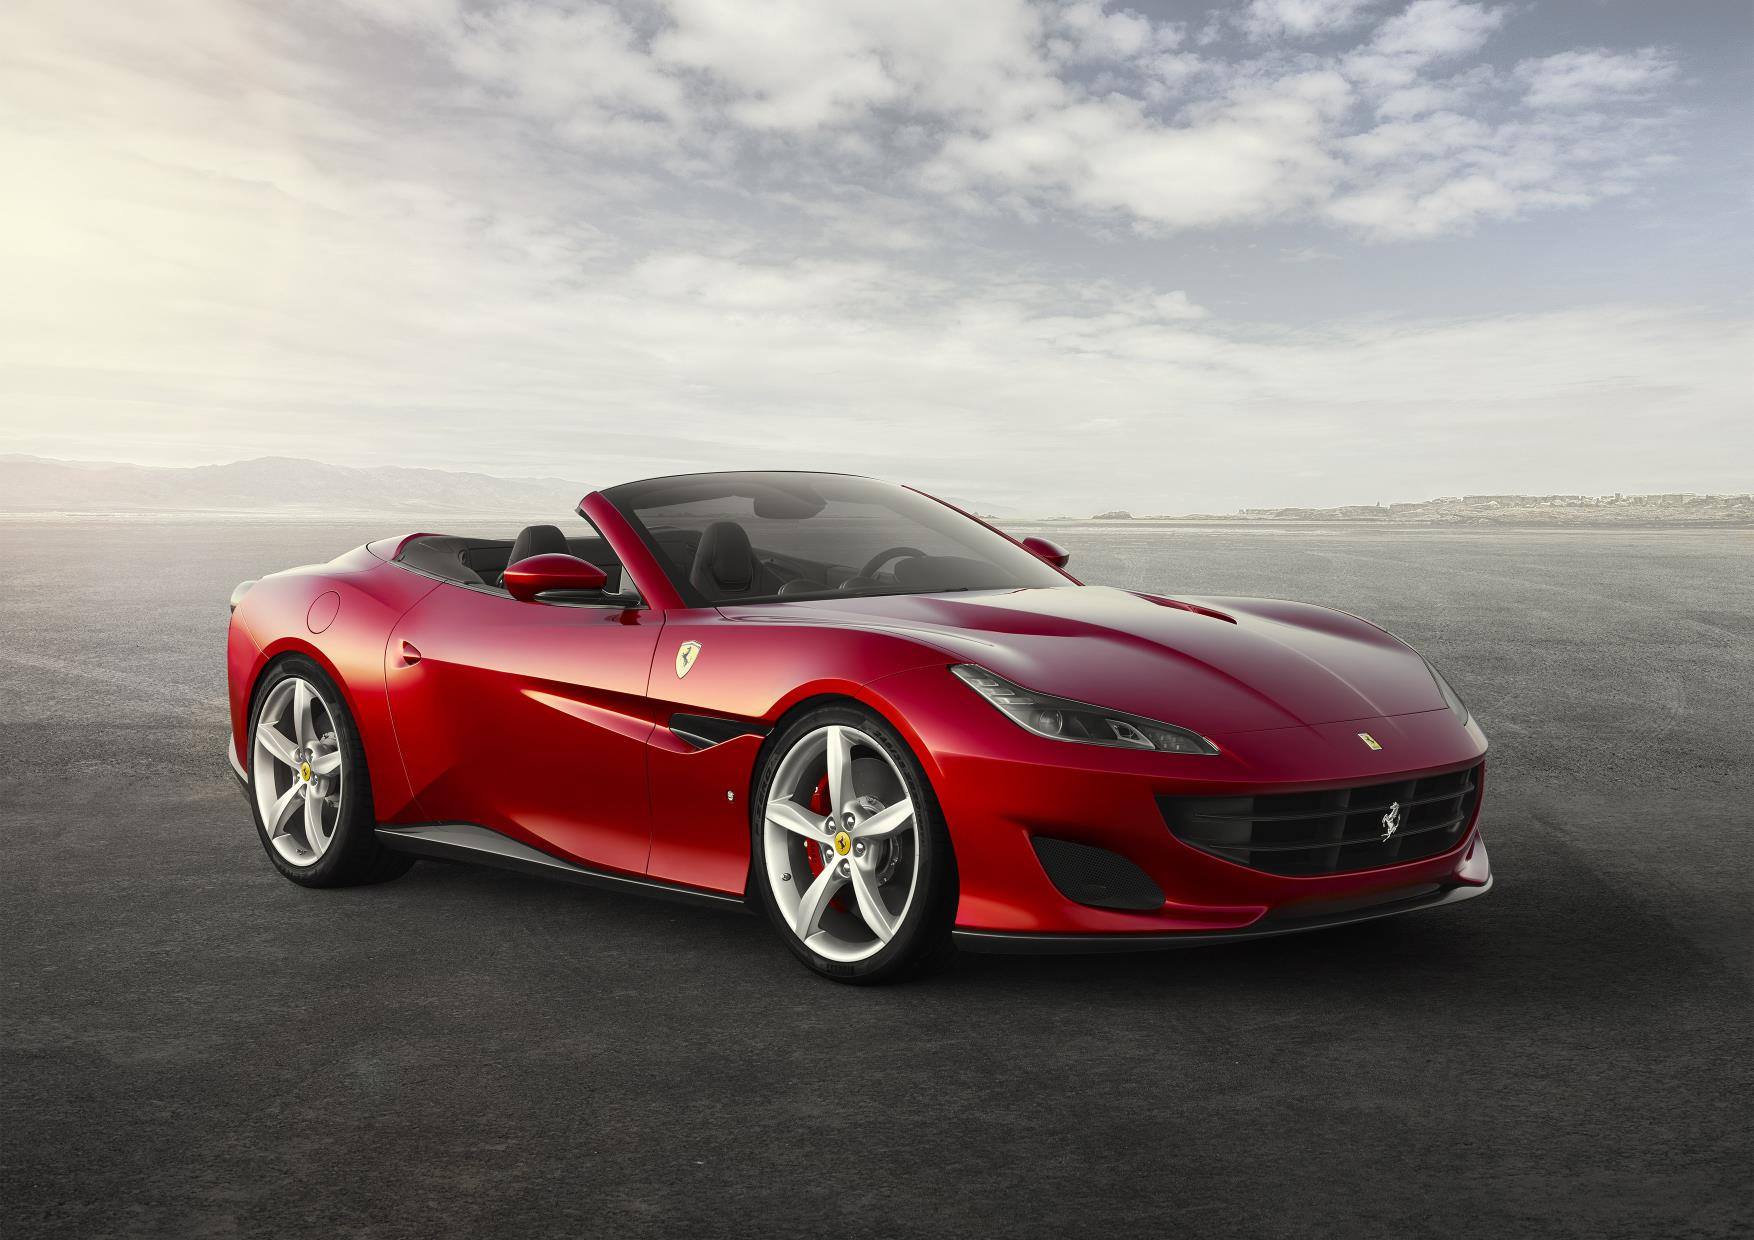 Ferrari Portofino in red